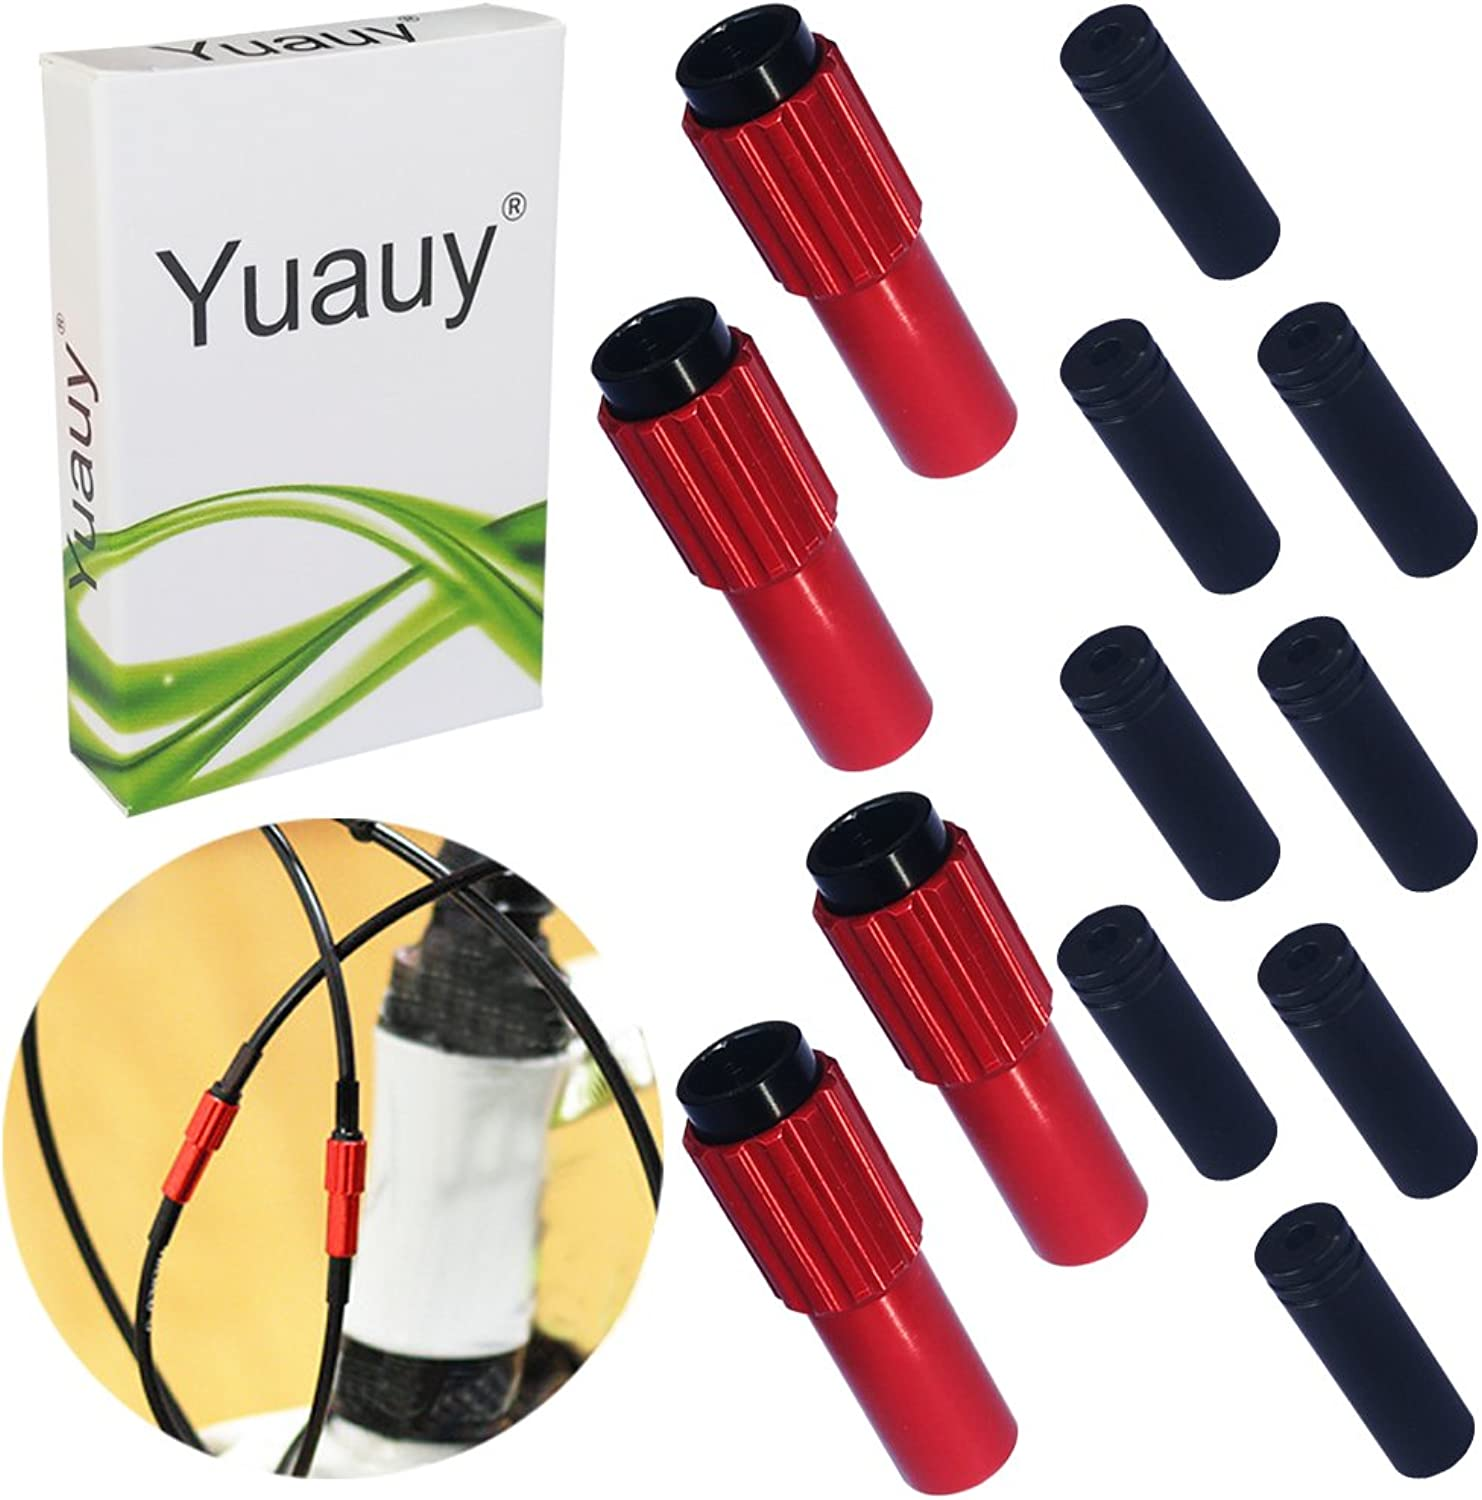 Yuauy 4 PCs Red Mini Inline Bicycle Cable Adjusters w End Caps